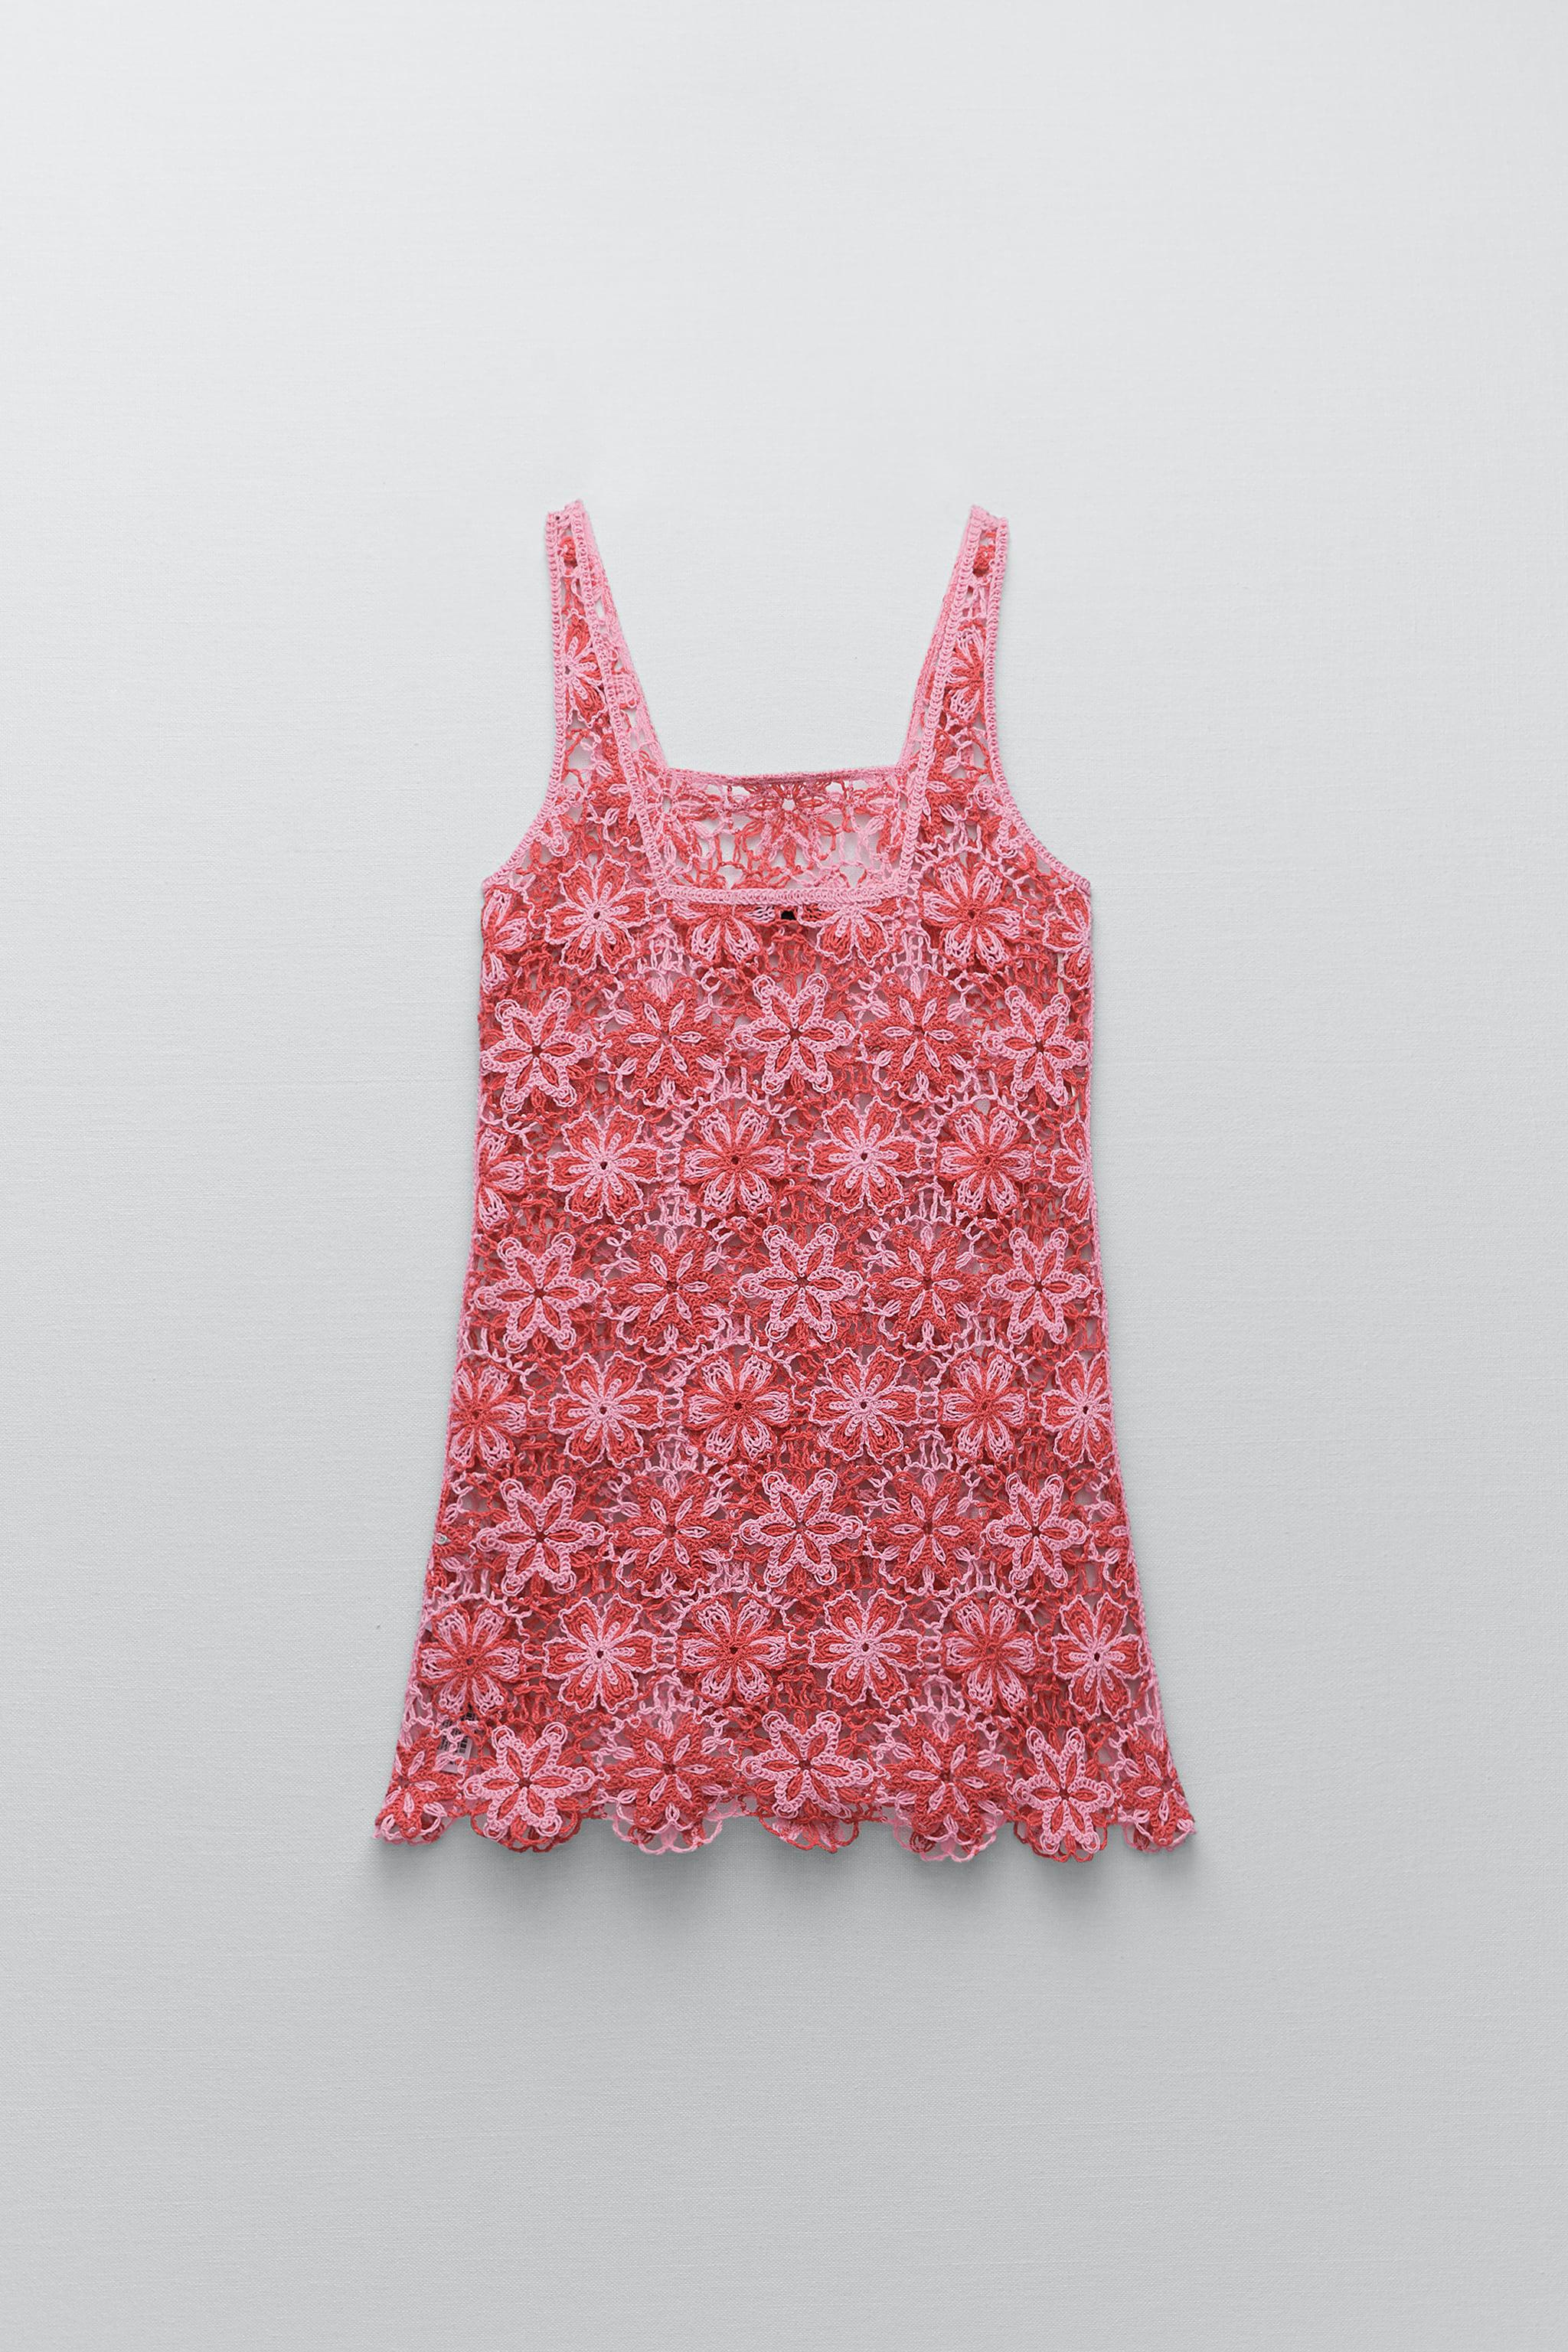 CROCHET FLORAL DRESS SPECIAL EDITION 2